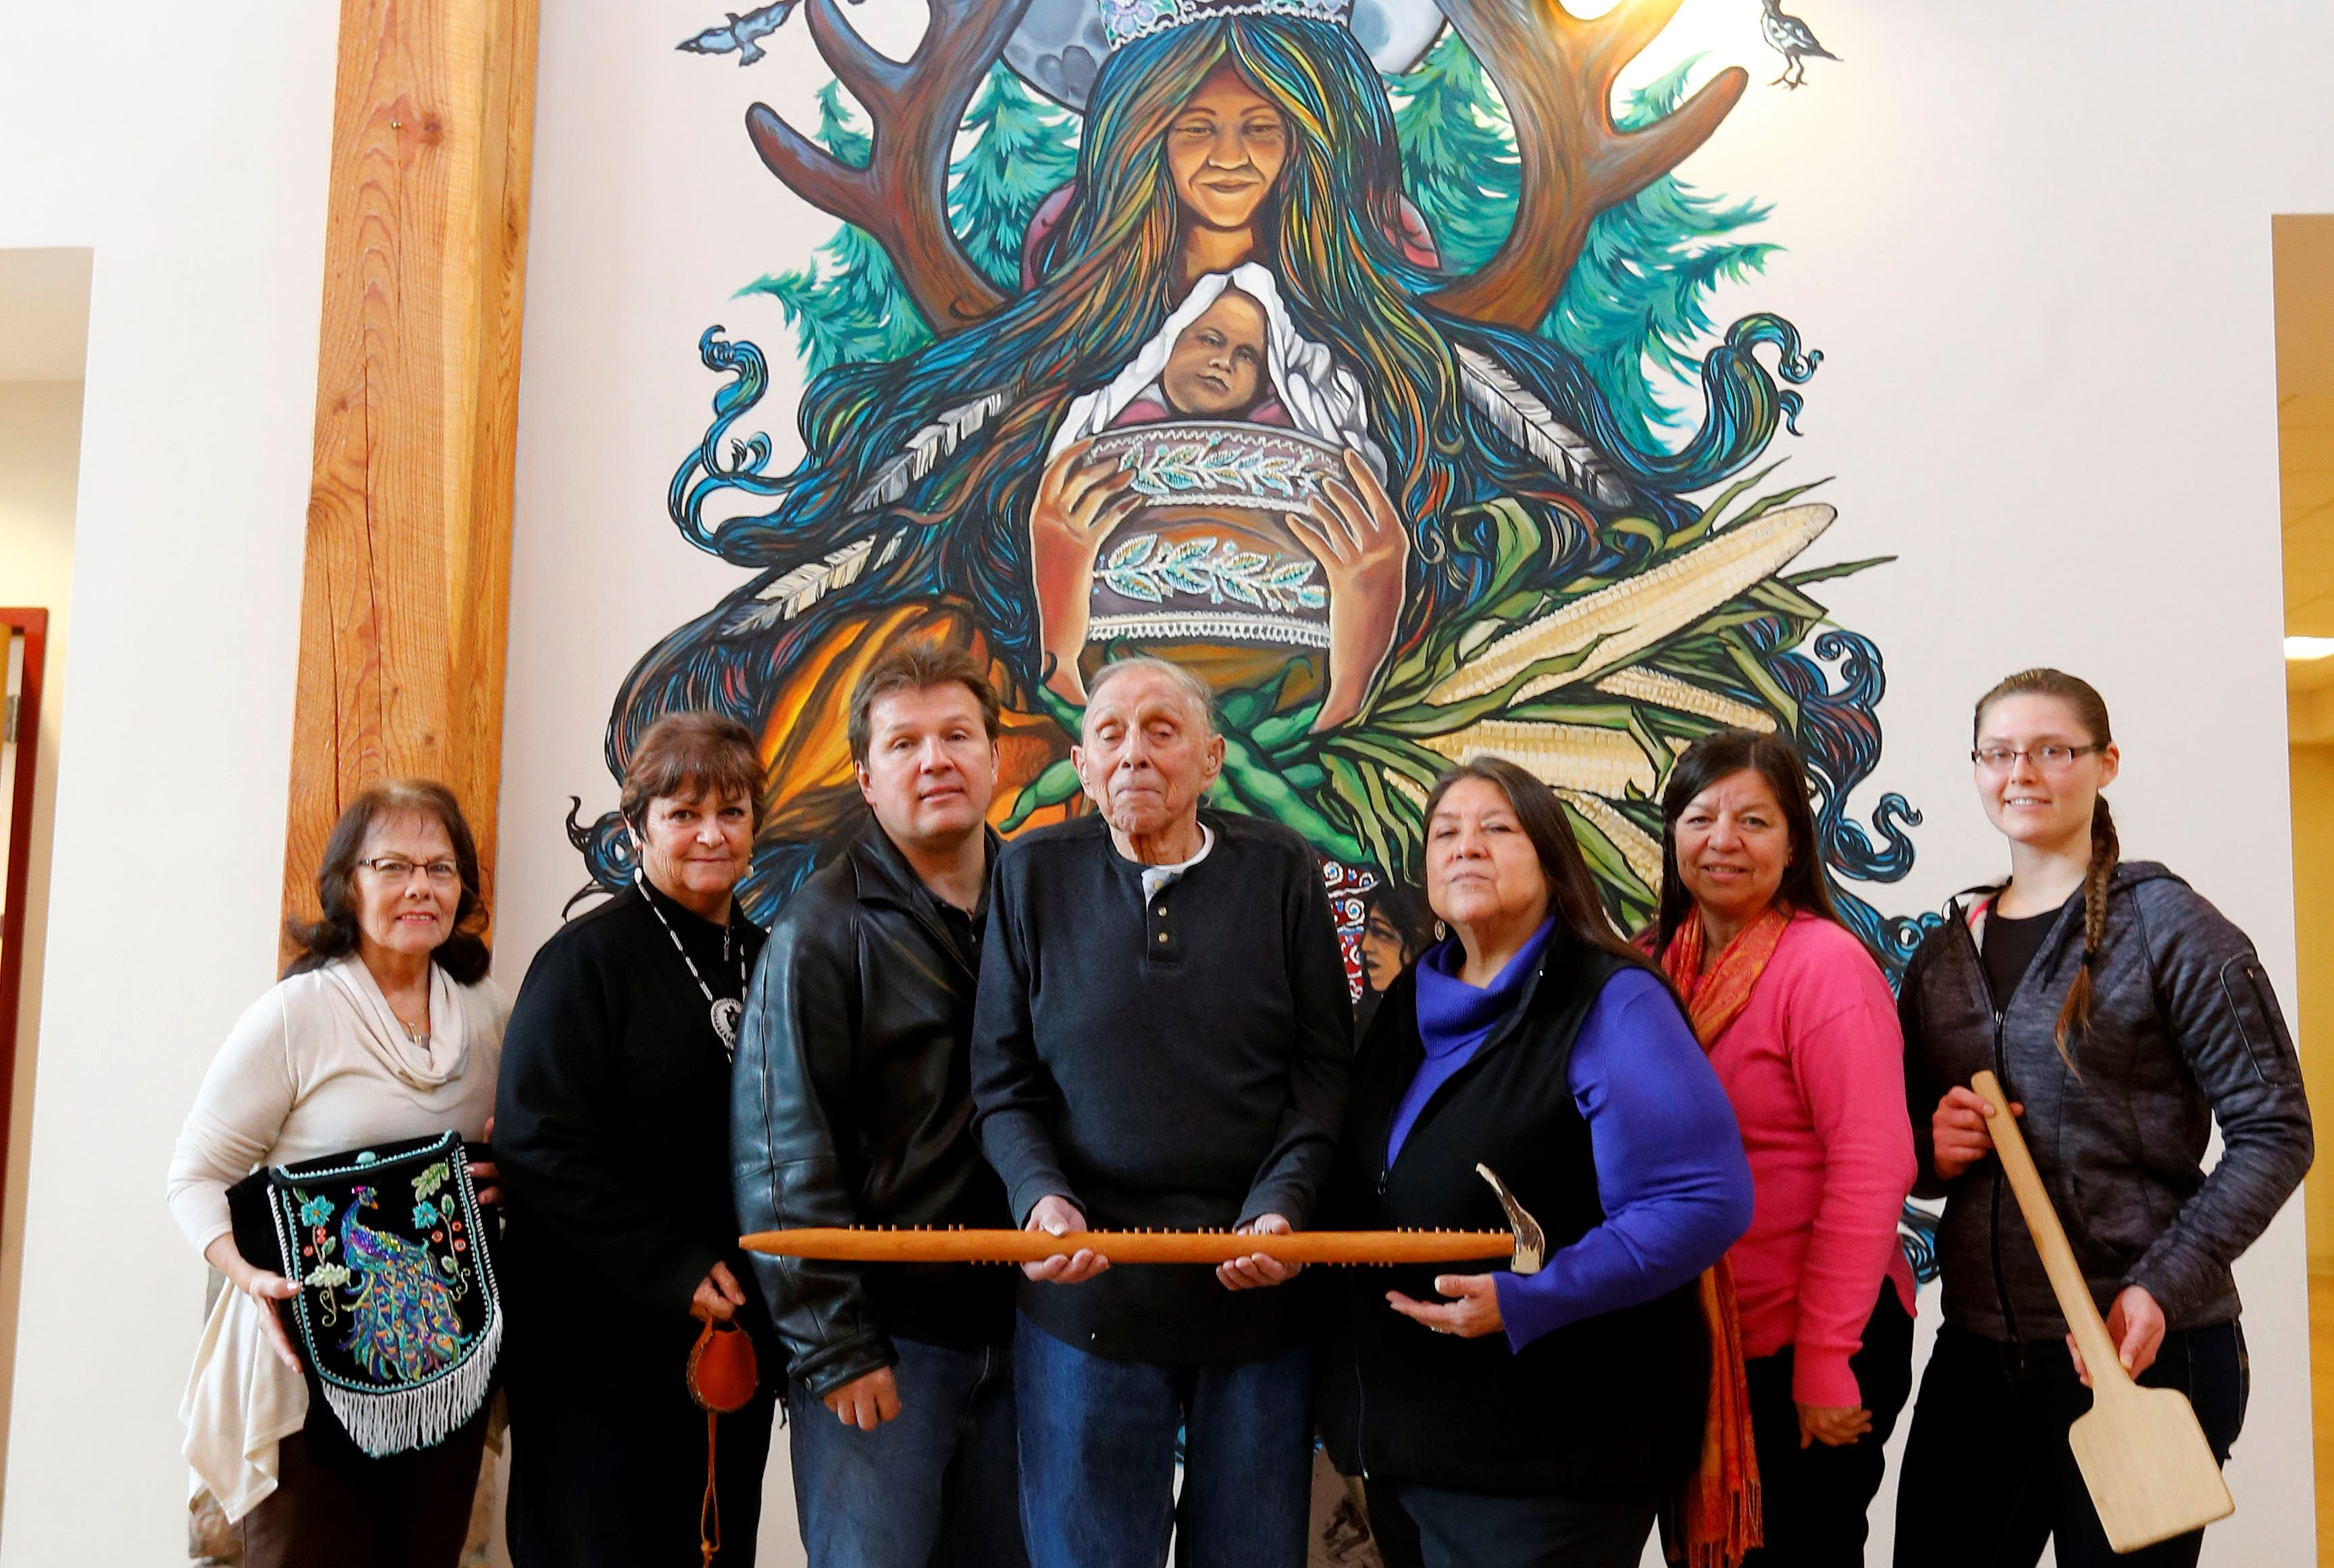 Members of the History Group of the Tuscarora Nation plan an informative open house March 25 at the Nation House. They are, from left, Judy Judware, Yesenaruhcreh Wendy Bissell, Vince Schiffert, Chief Leo Henry, Gagehatdat Schandream, Angela Jonathan, and Taylor Hummel.  They are holding an example of beadwork, a traditional condolence cane related to the naming of a chief, and a wooden paddle used to stir cooking corn bread. (Mark Mulville/Buffalo News)